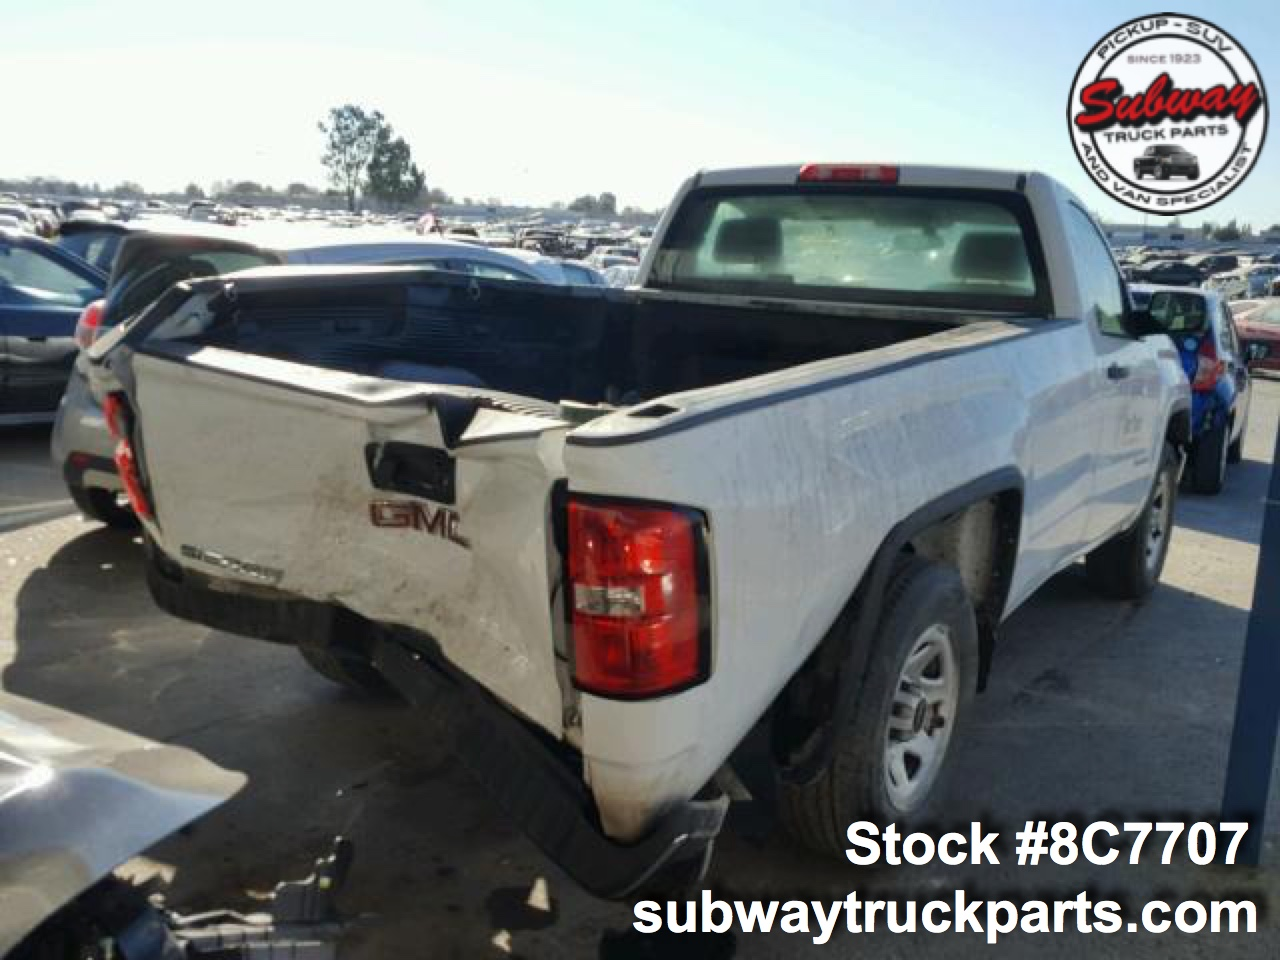 Used Parts 2015 Gmc Sierra 1500 Subway Truck Parts